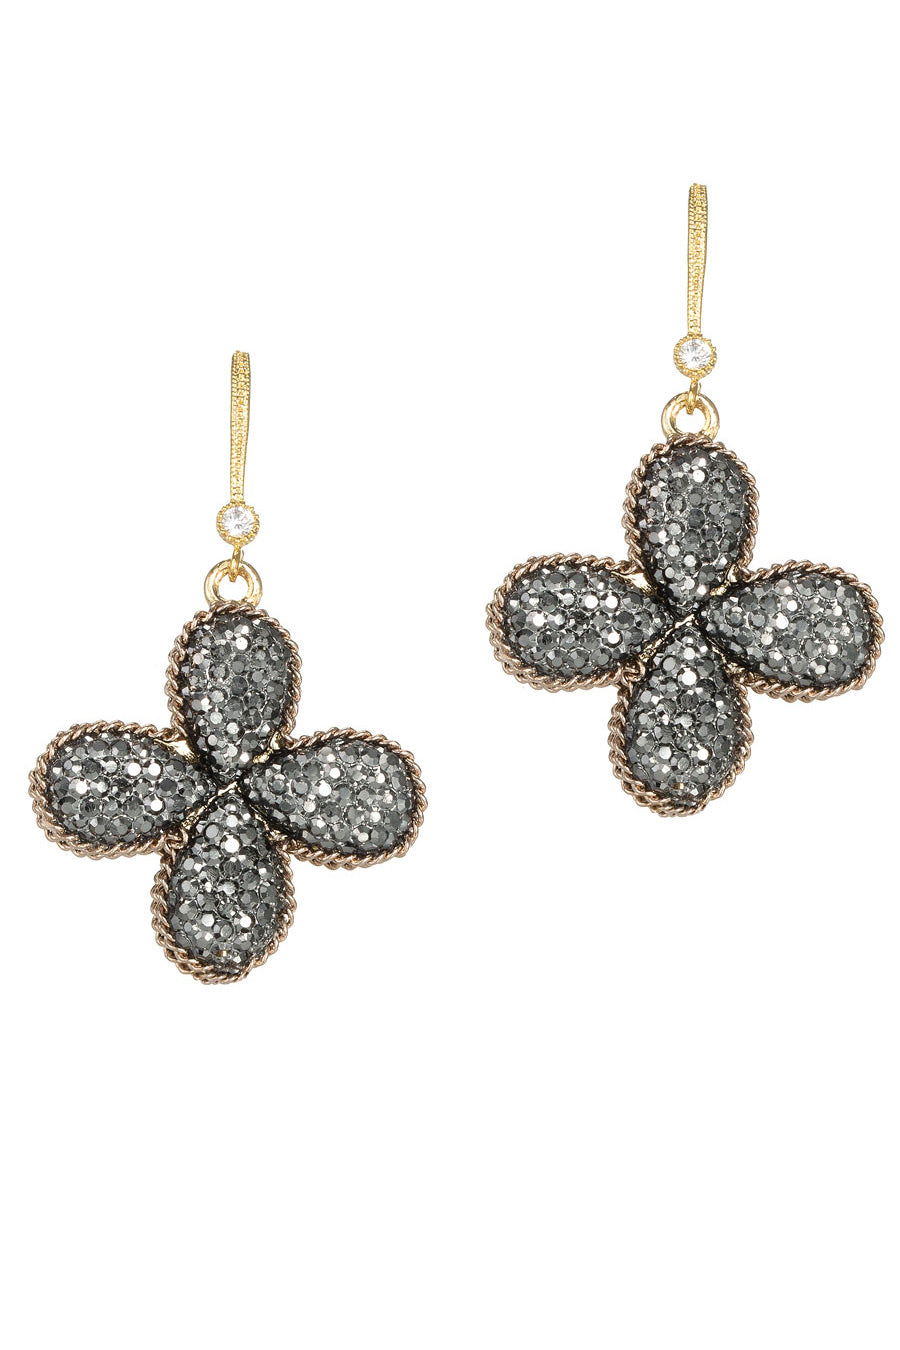 Theia Double Sided Single Tier Clover Drop Earring Antique Finish